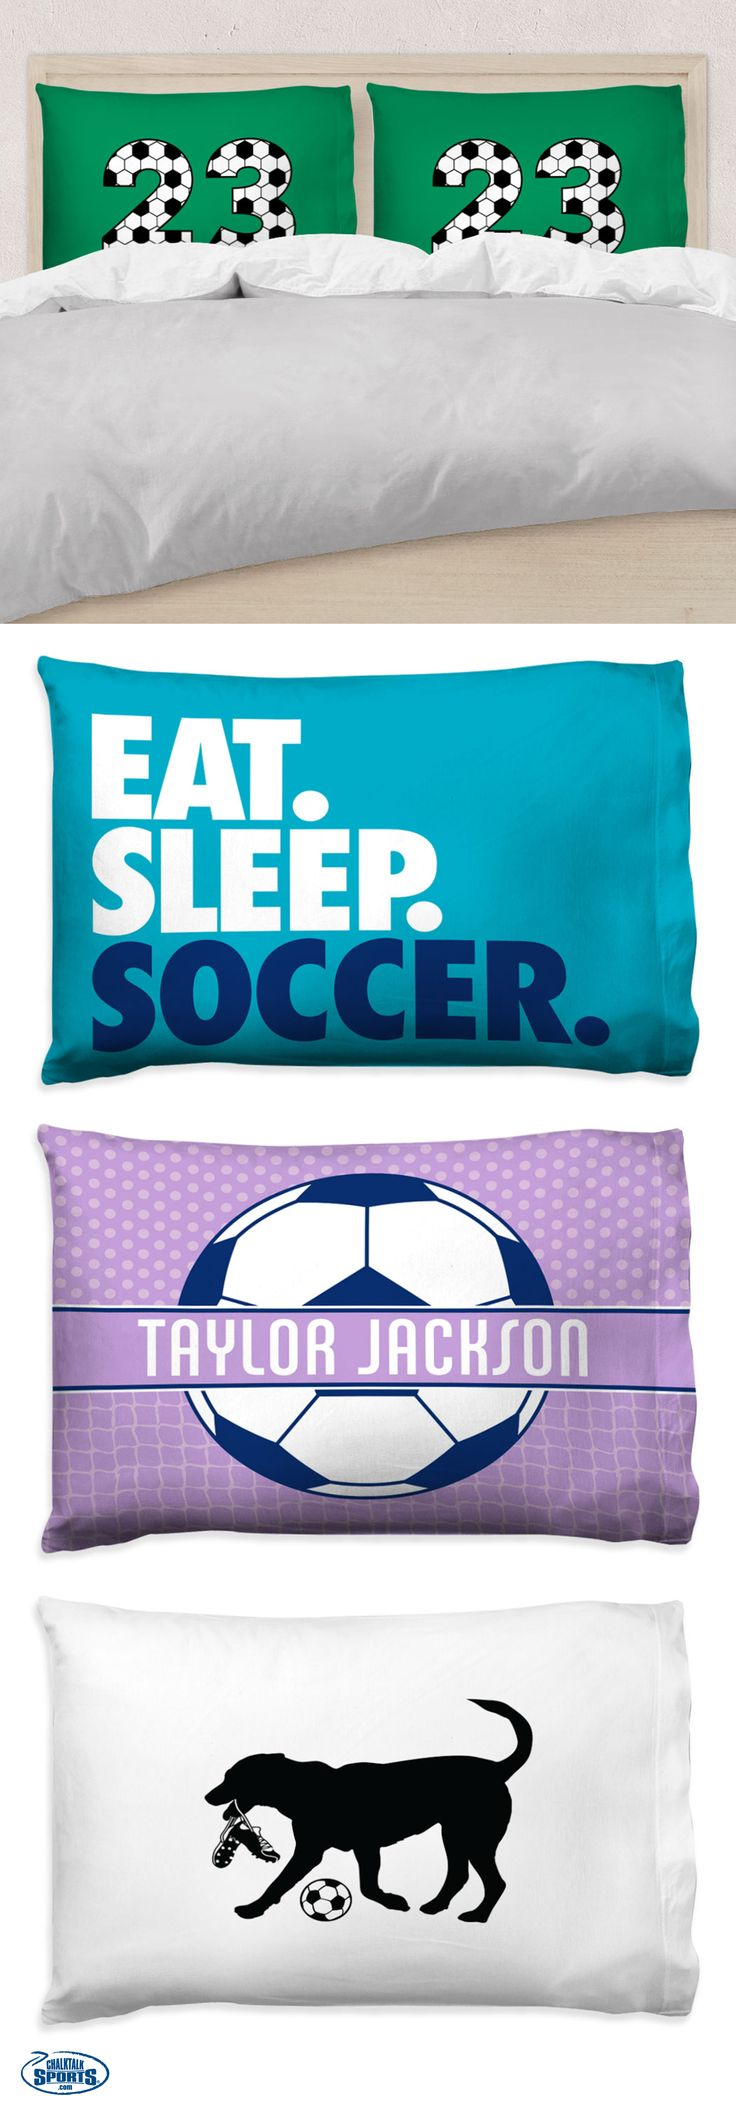 Soccer pillowcases -- the perfect gift for any soccer player! Add a touch of soccer flair to their room -- we know they'll love it!